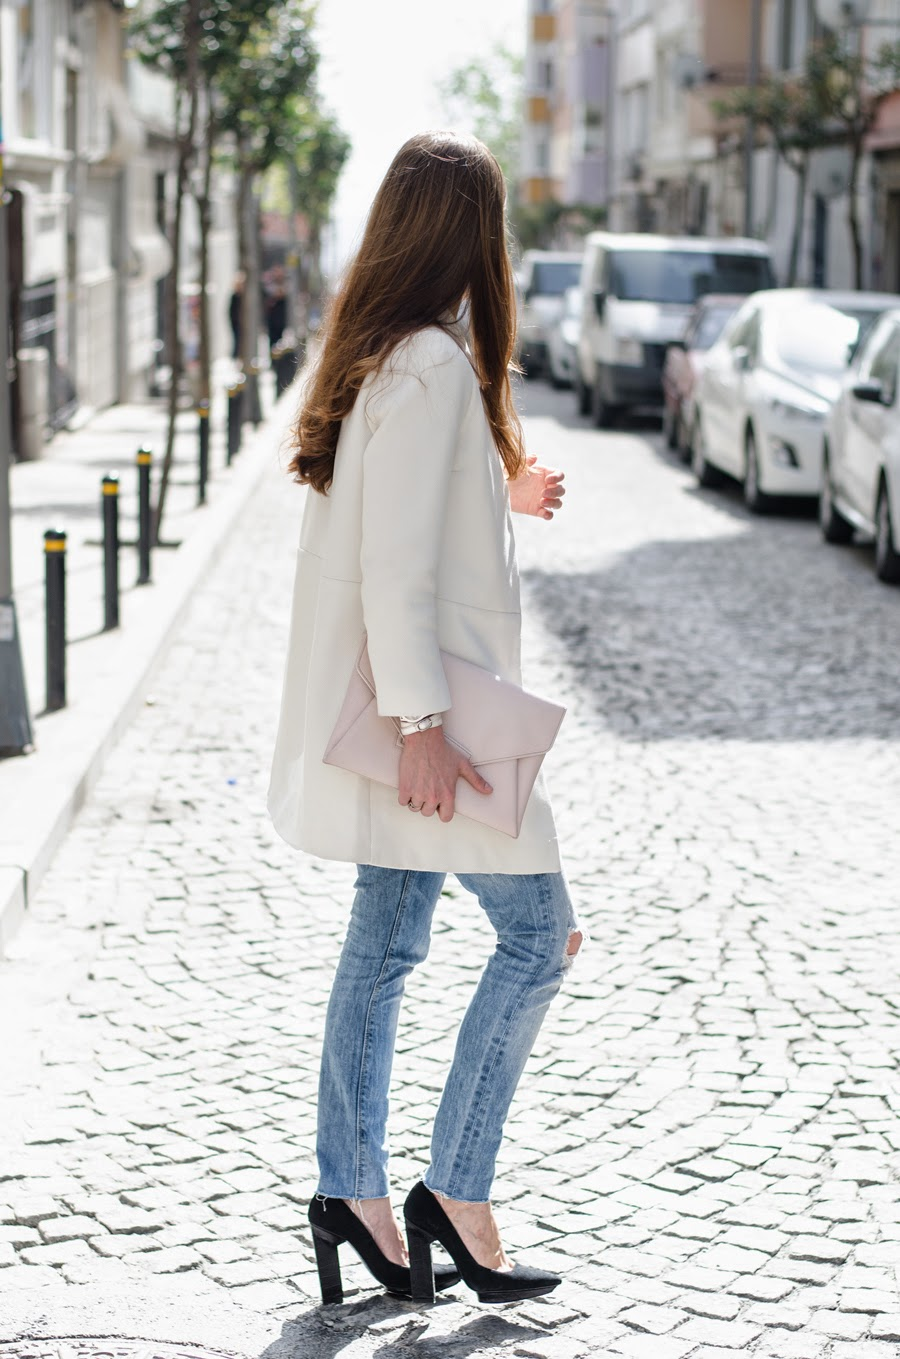 russian fashionblogger , istanbul streetstyle, streetstyle details, white coat outfit, zara denim outfit, boyfriend cut jeans outfit